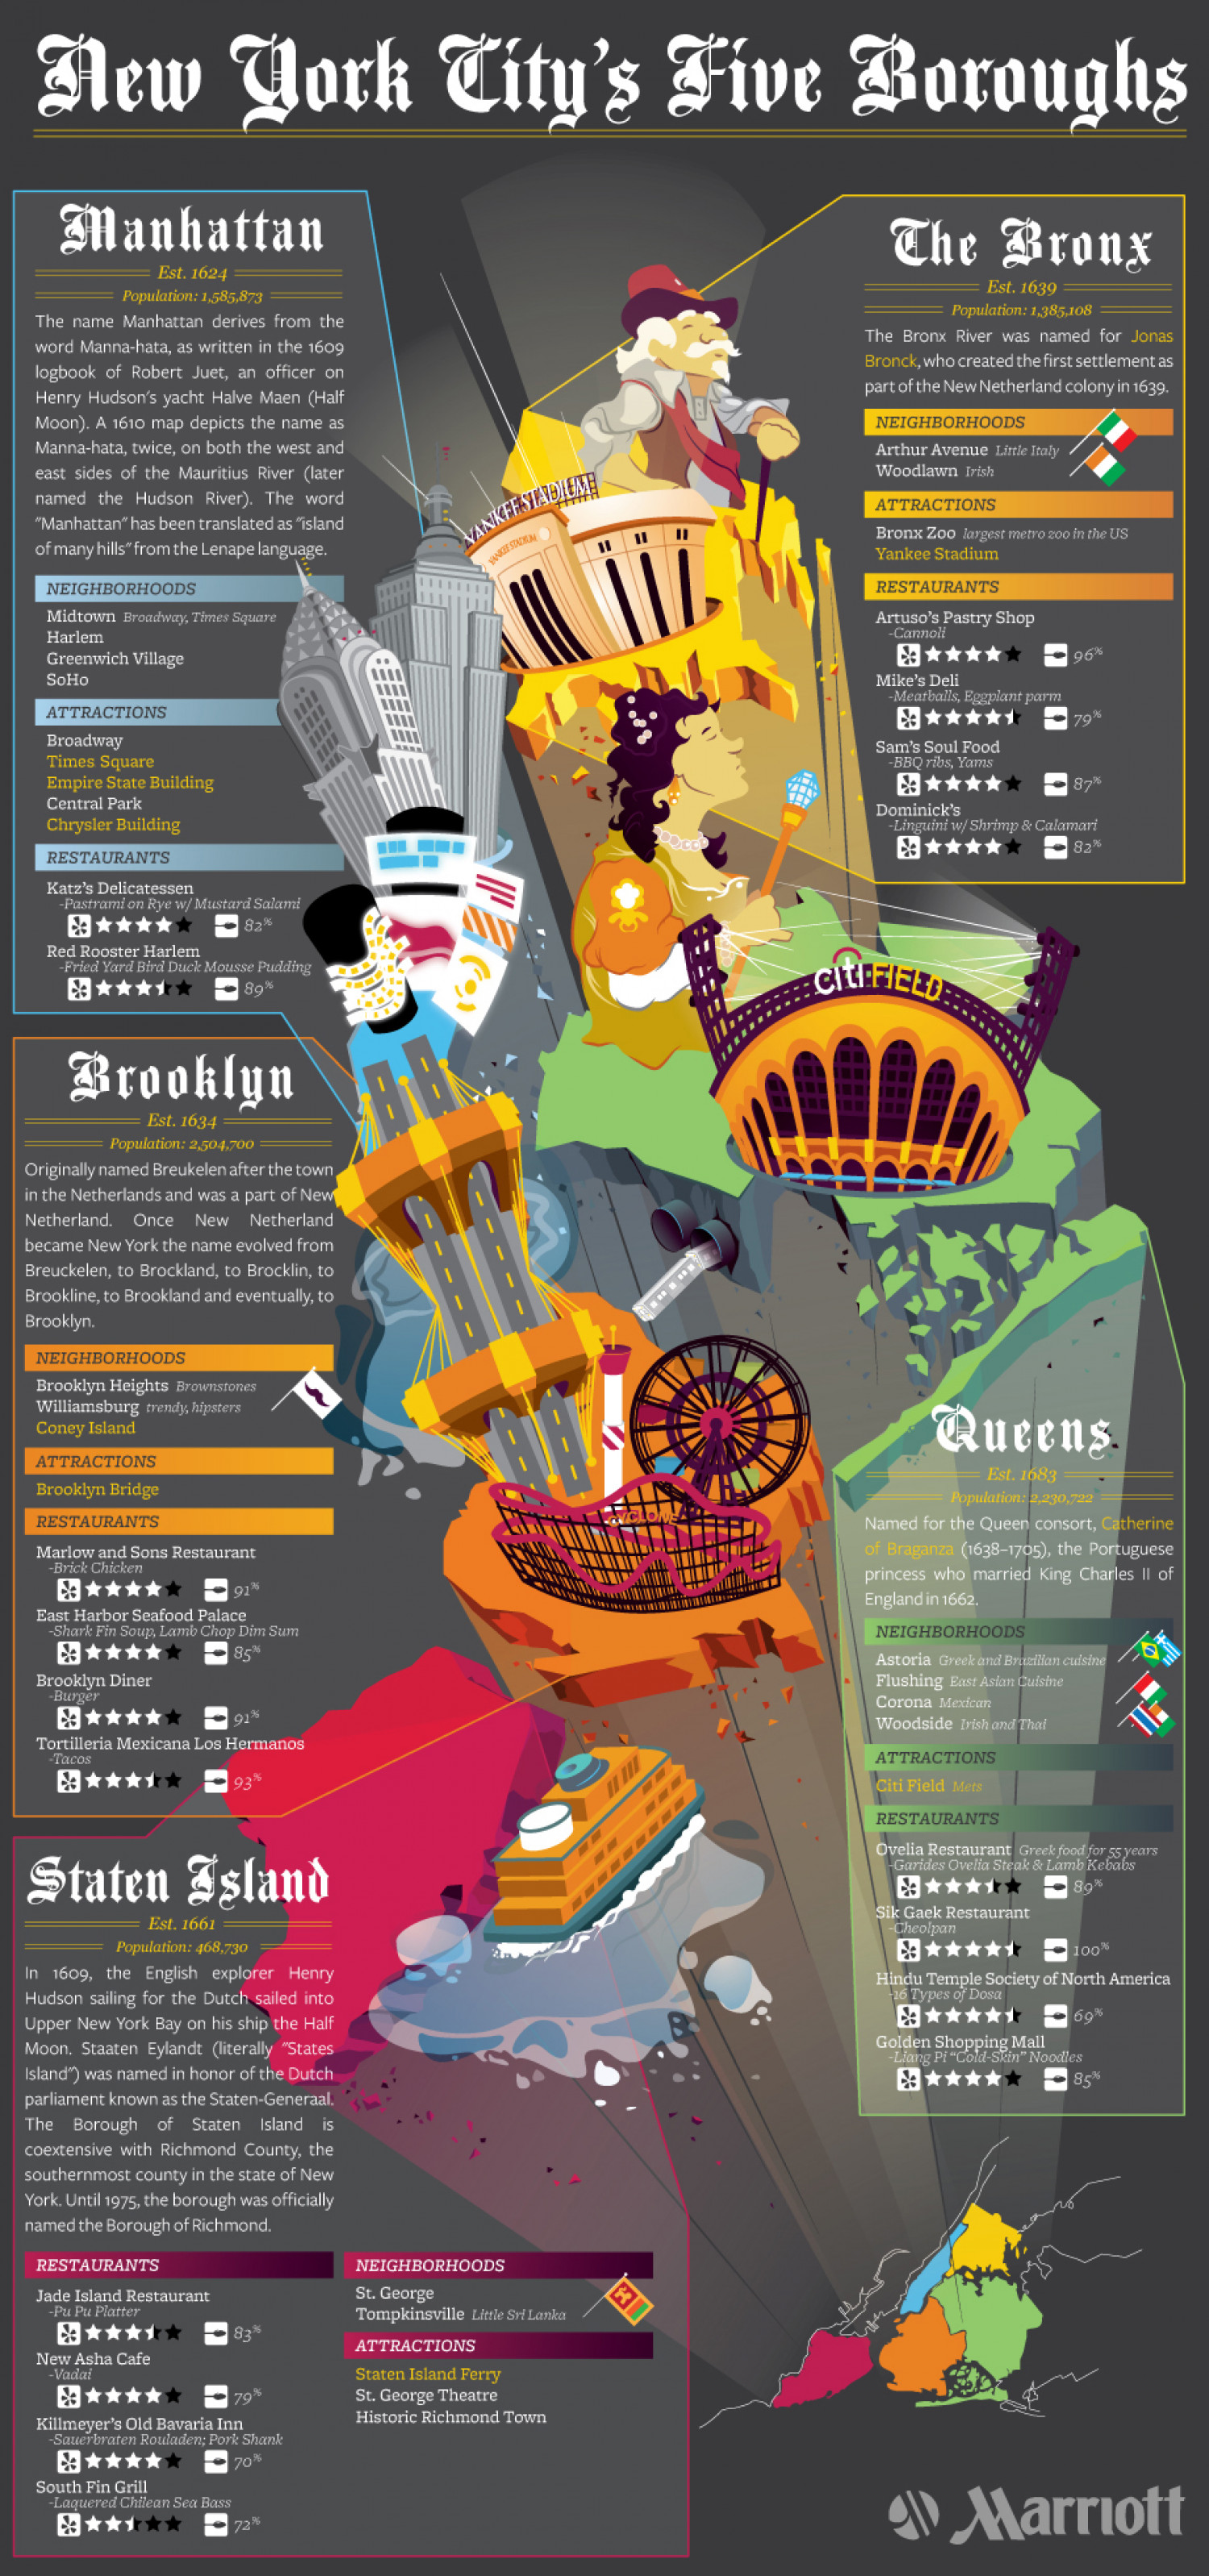 New York Citys Five Boroughs Visually - Nyc map of boroughs